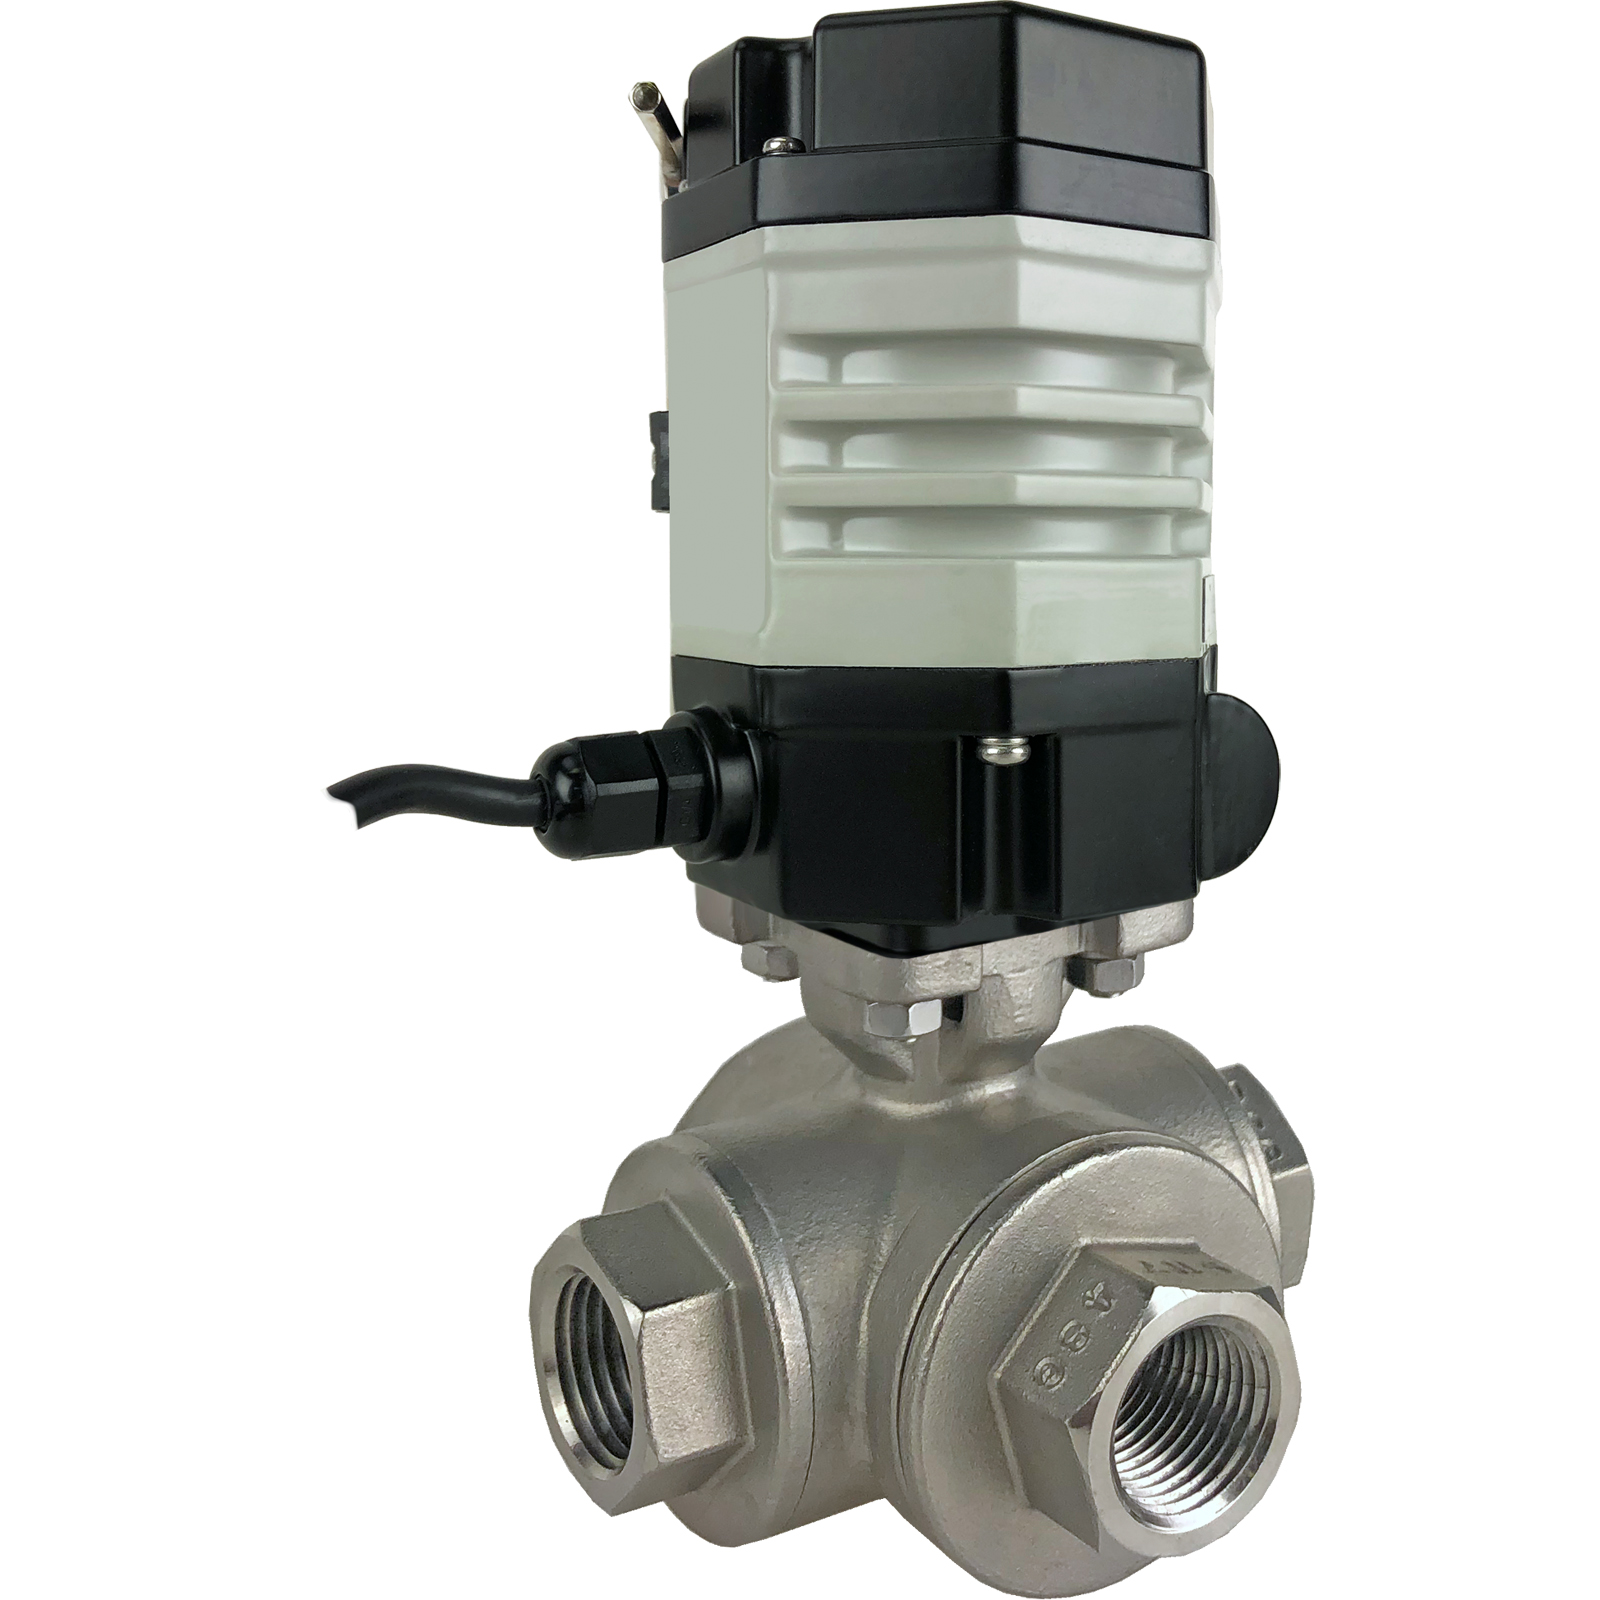 """1/2"""" Compact Electric 3-Way Stainless L-Diverter Valve 24 VDC"""